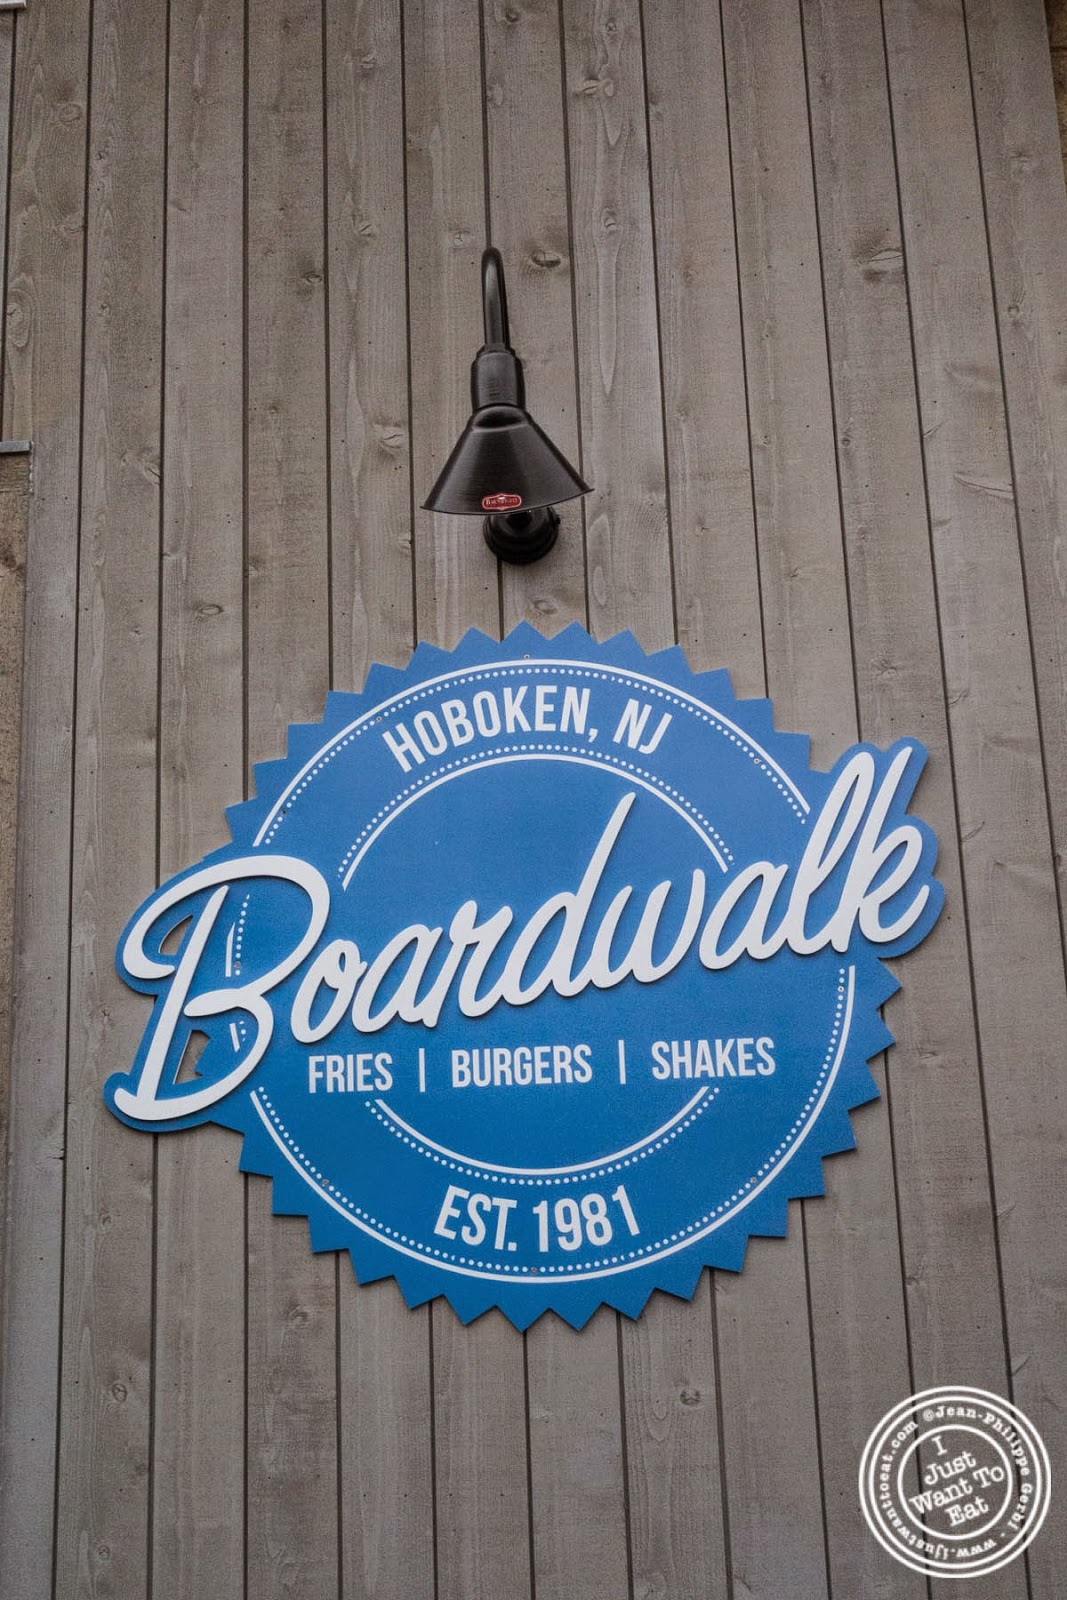 Boardwalk Fresh Burgers and Fries in Hoboken, NJ